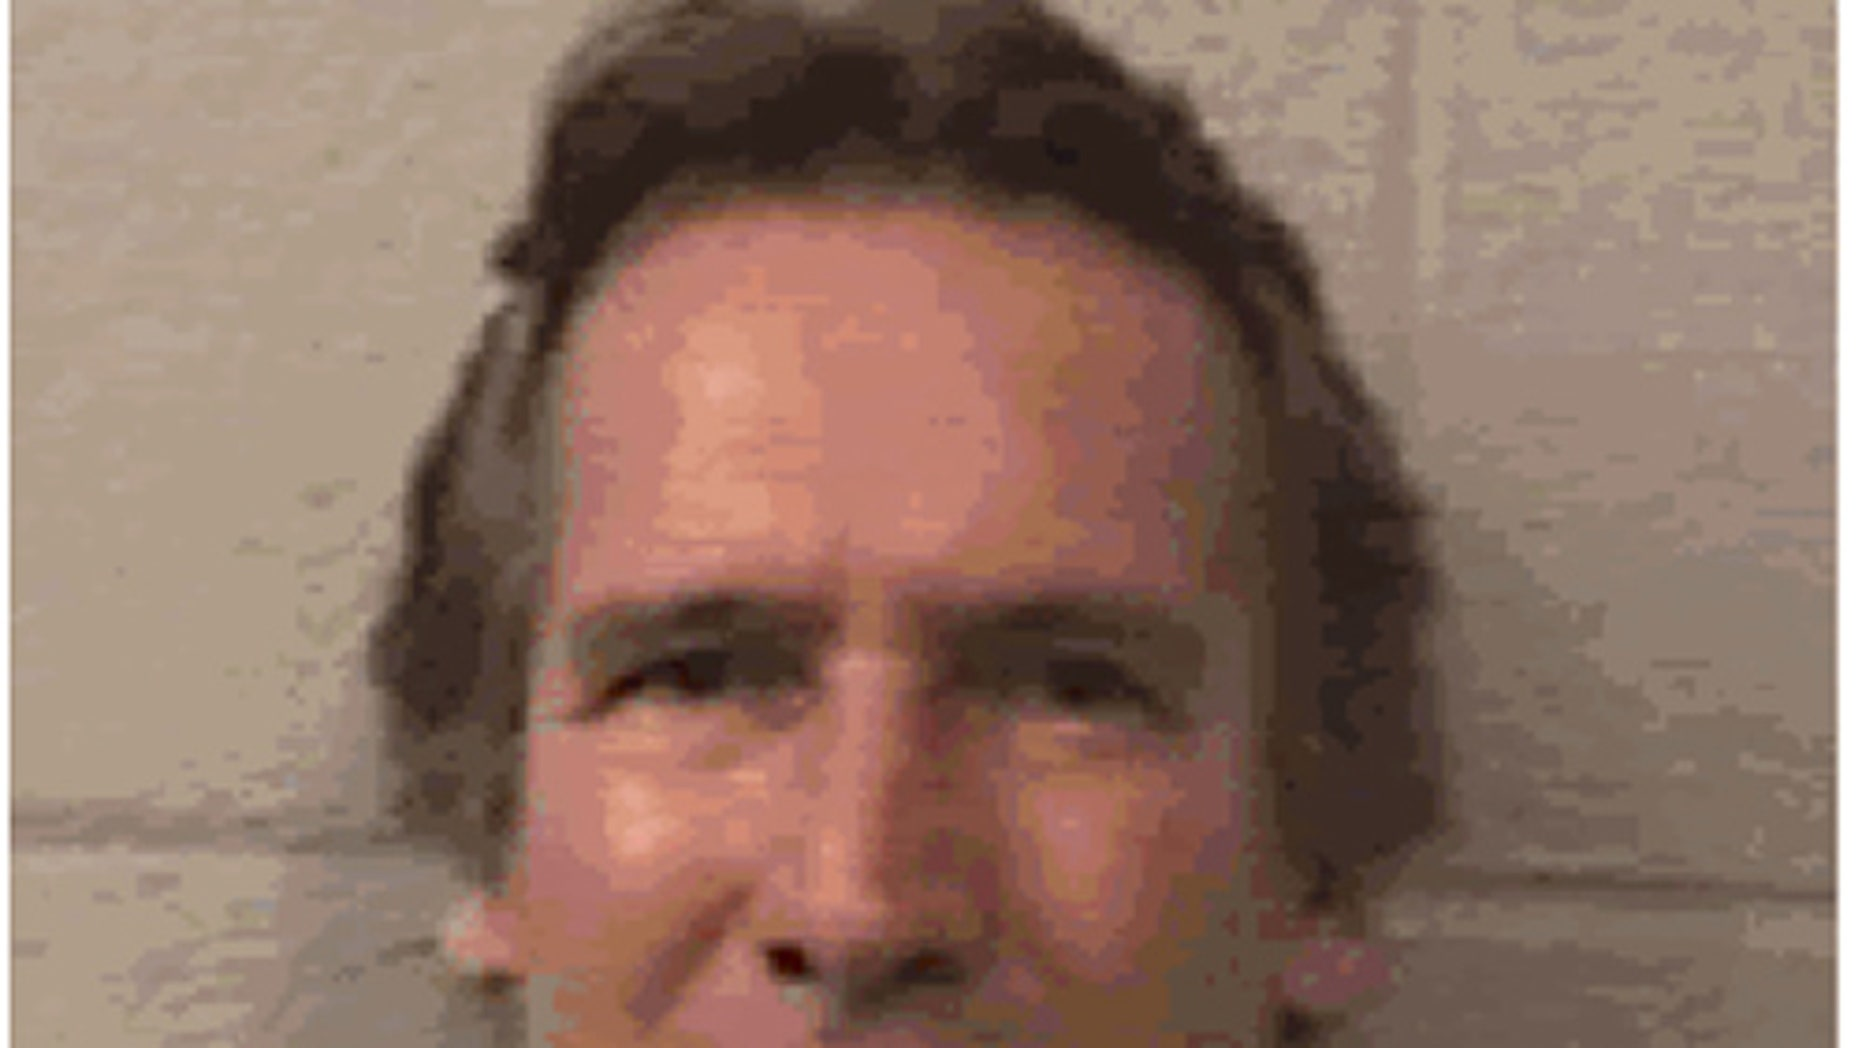 The Rev. David Rice was arrested for allegedly stabbing his brother.